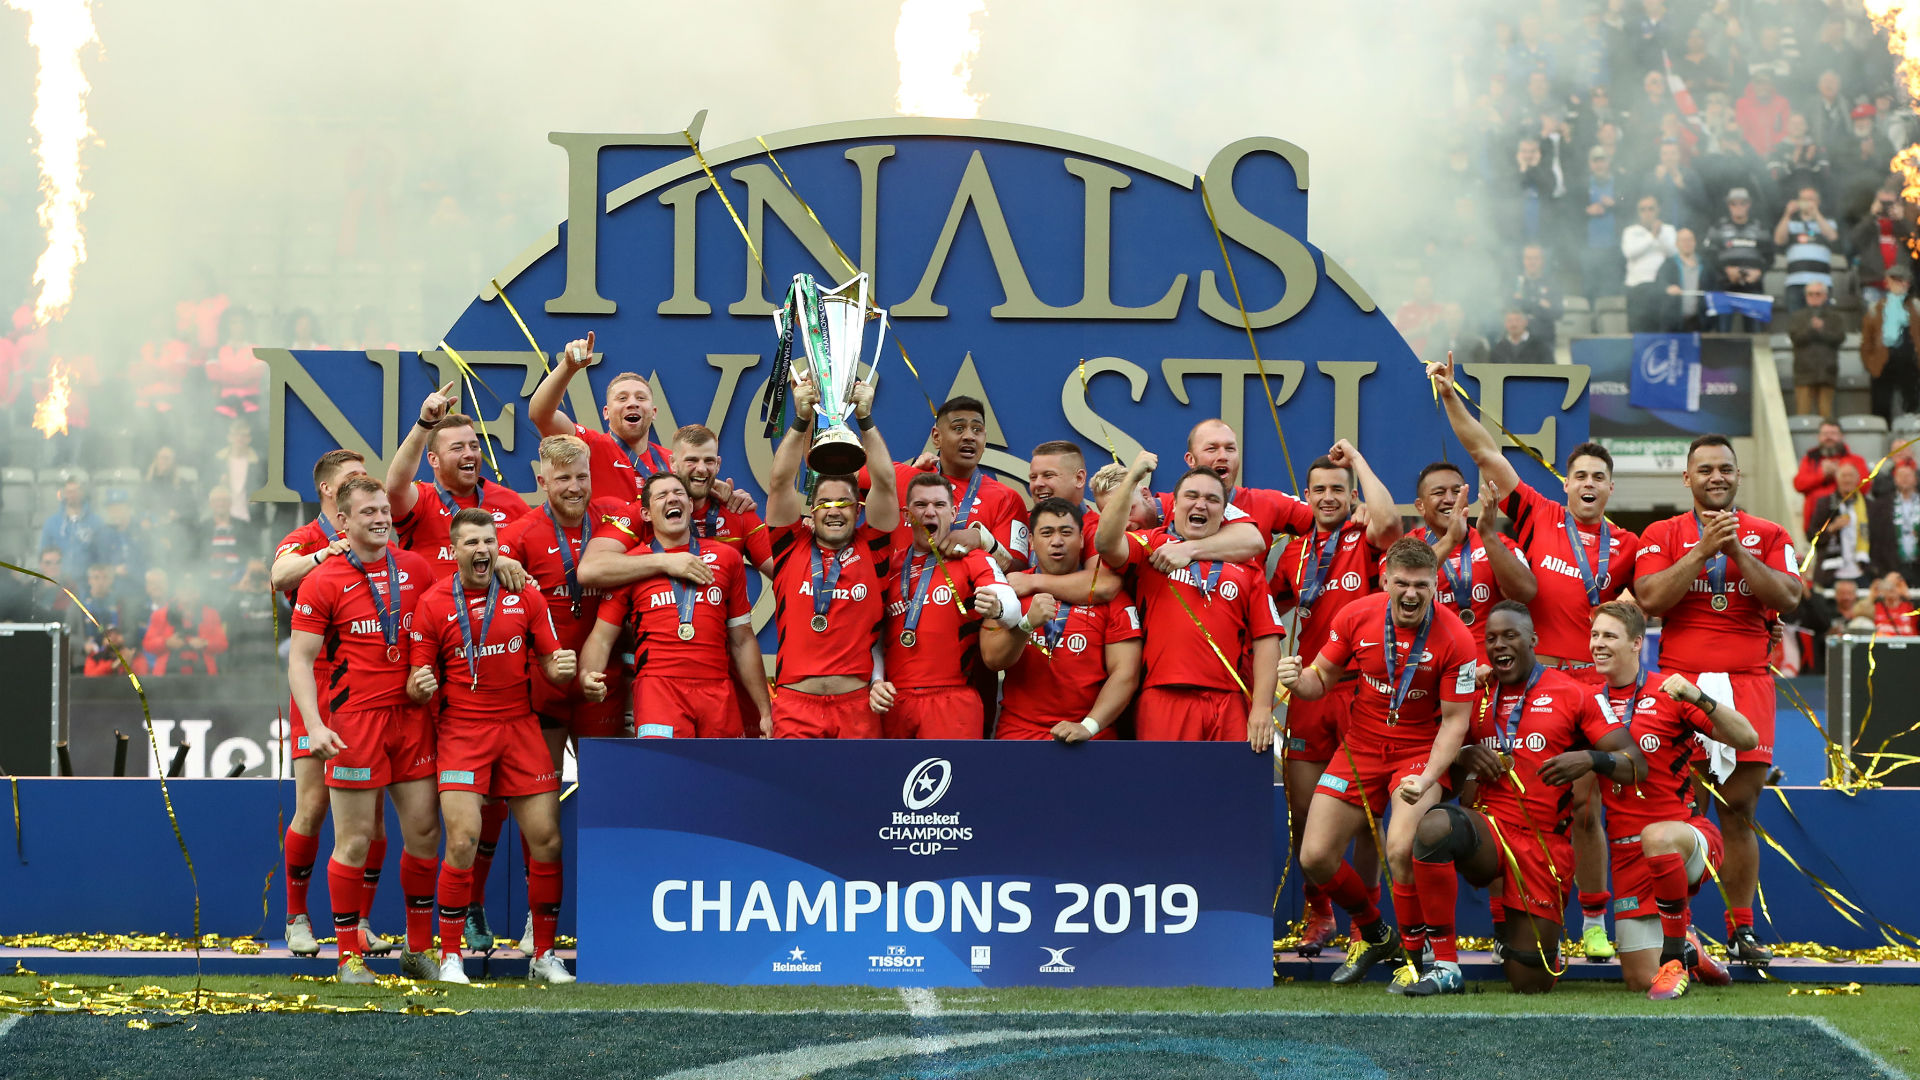 The fixtures for the 2019-20 Champions Cup and Challenge Cup have been revealed, with Saracens starting their title defence at Racing 92.